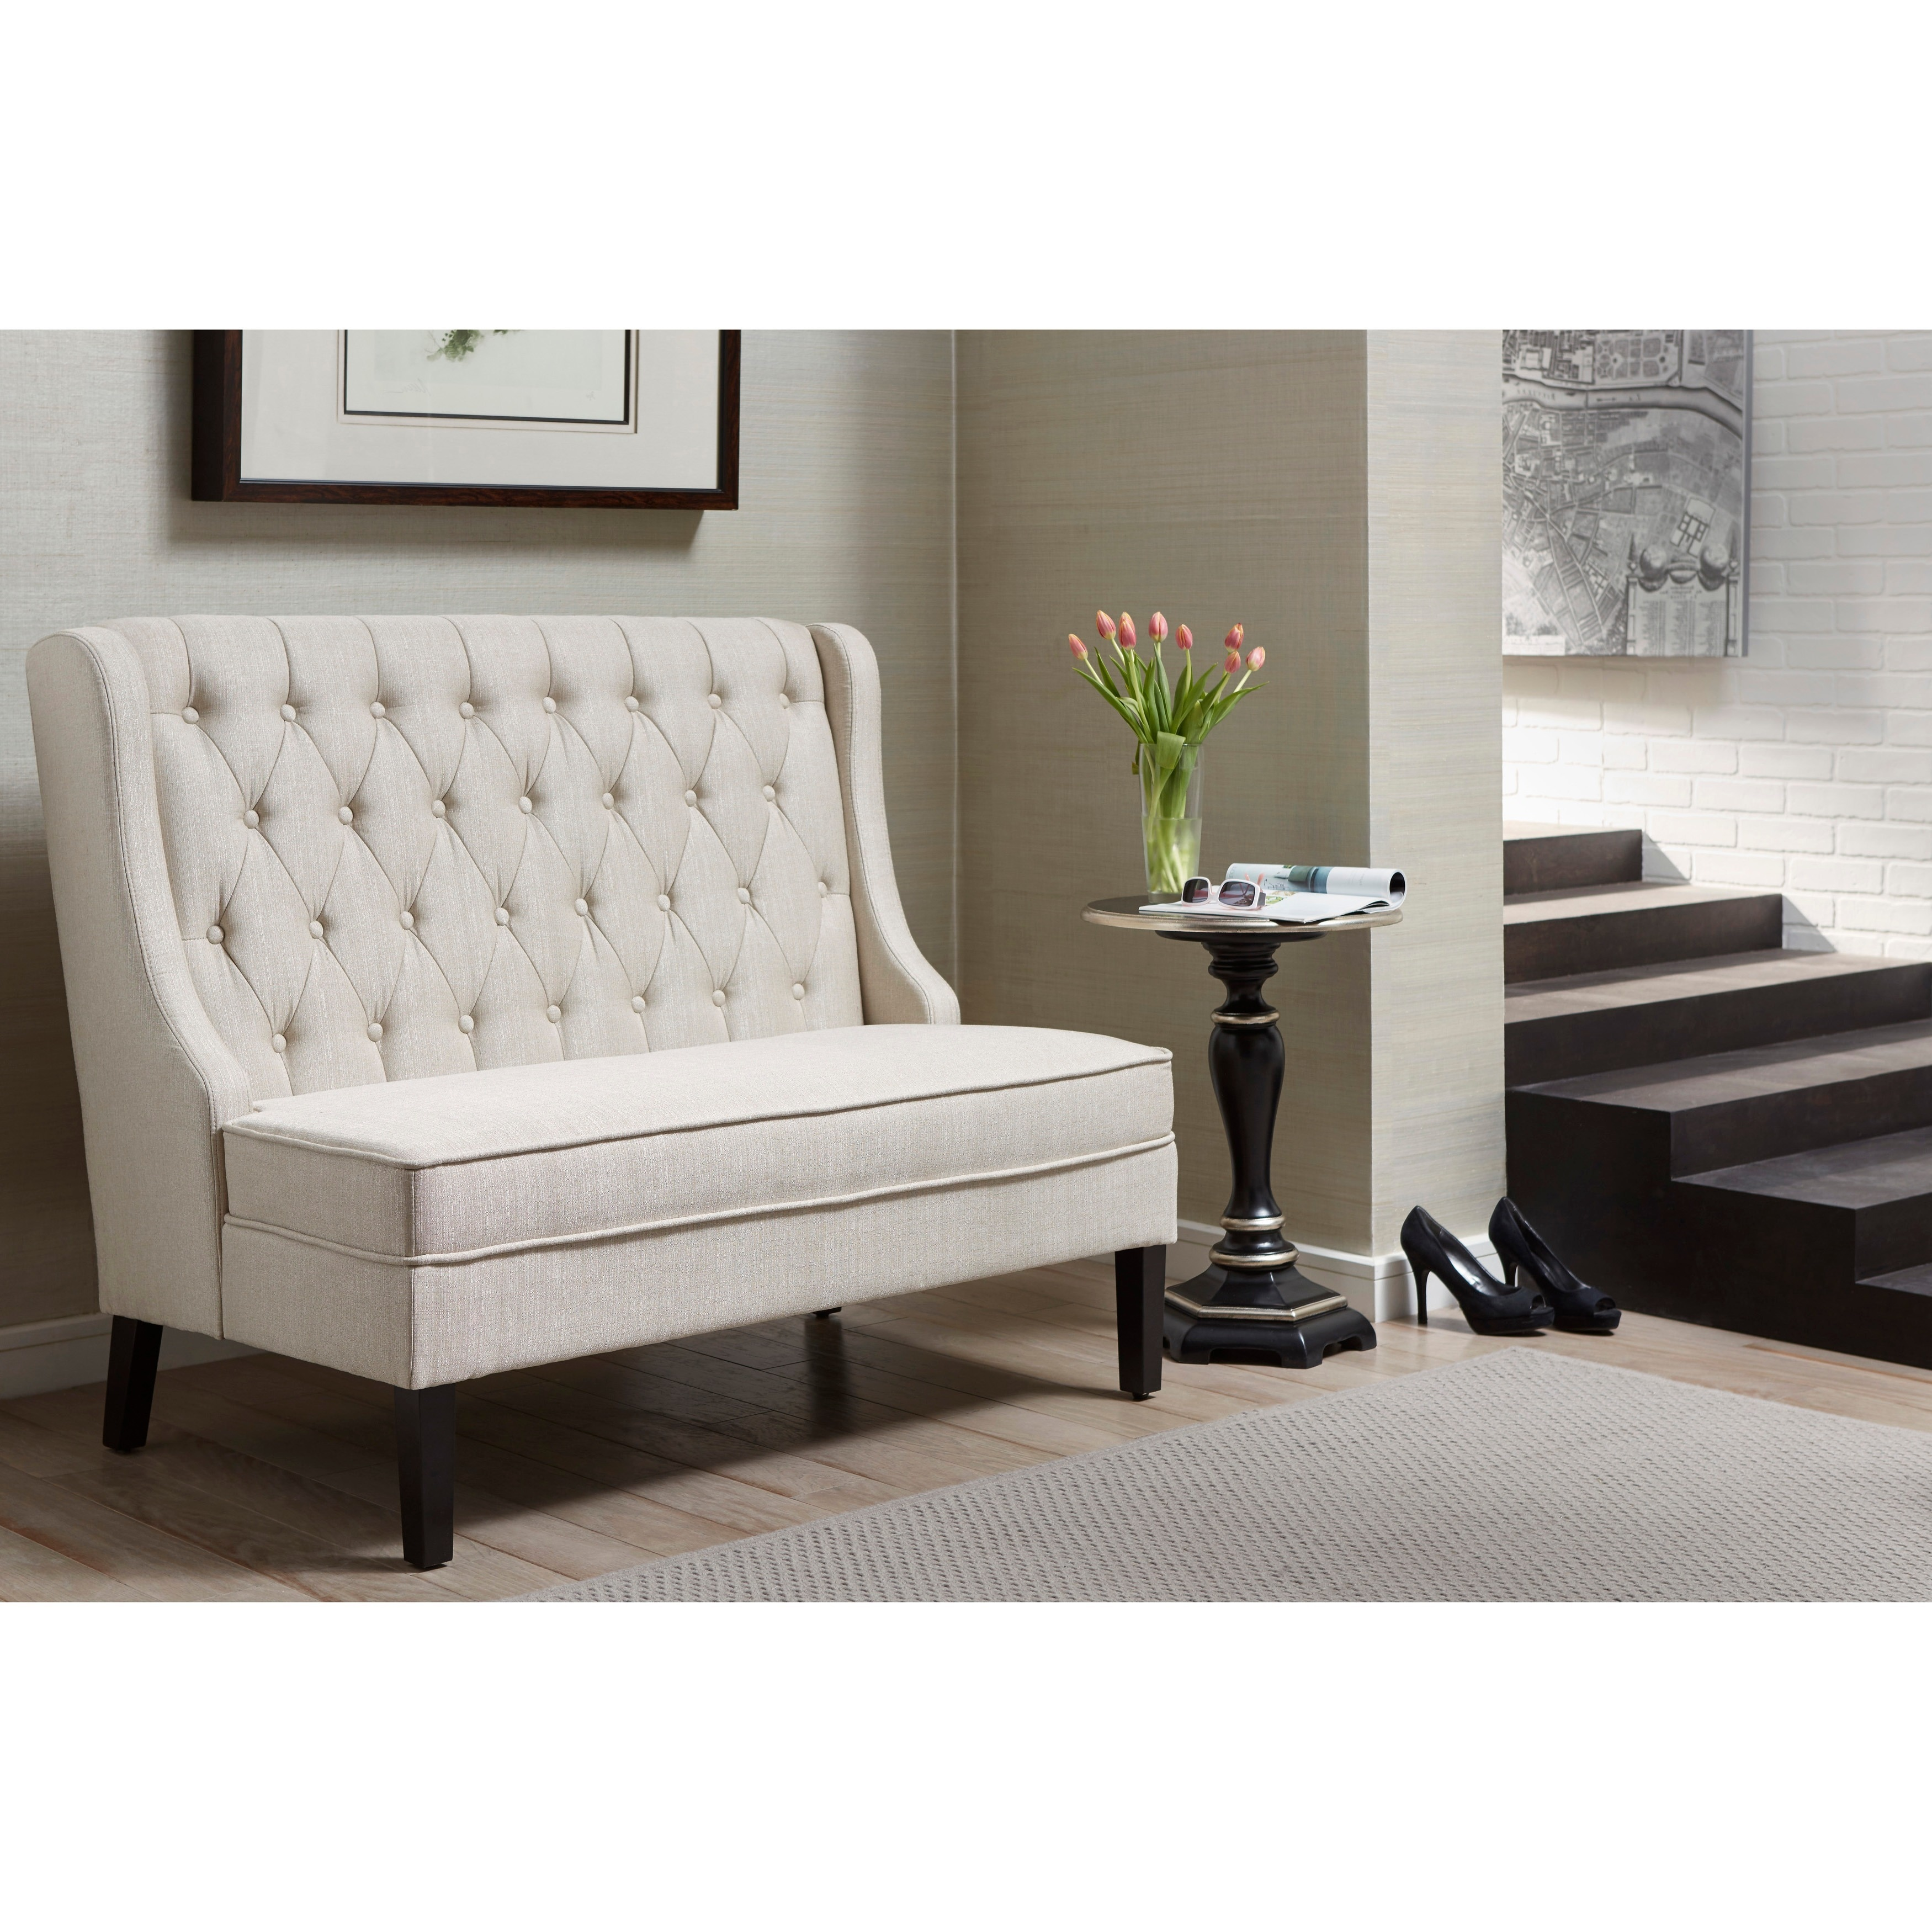 Picture of: Linen Tufted Upholstered Settee Bench On Sale Overstock 10054029